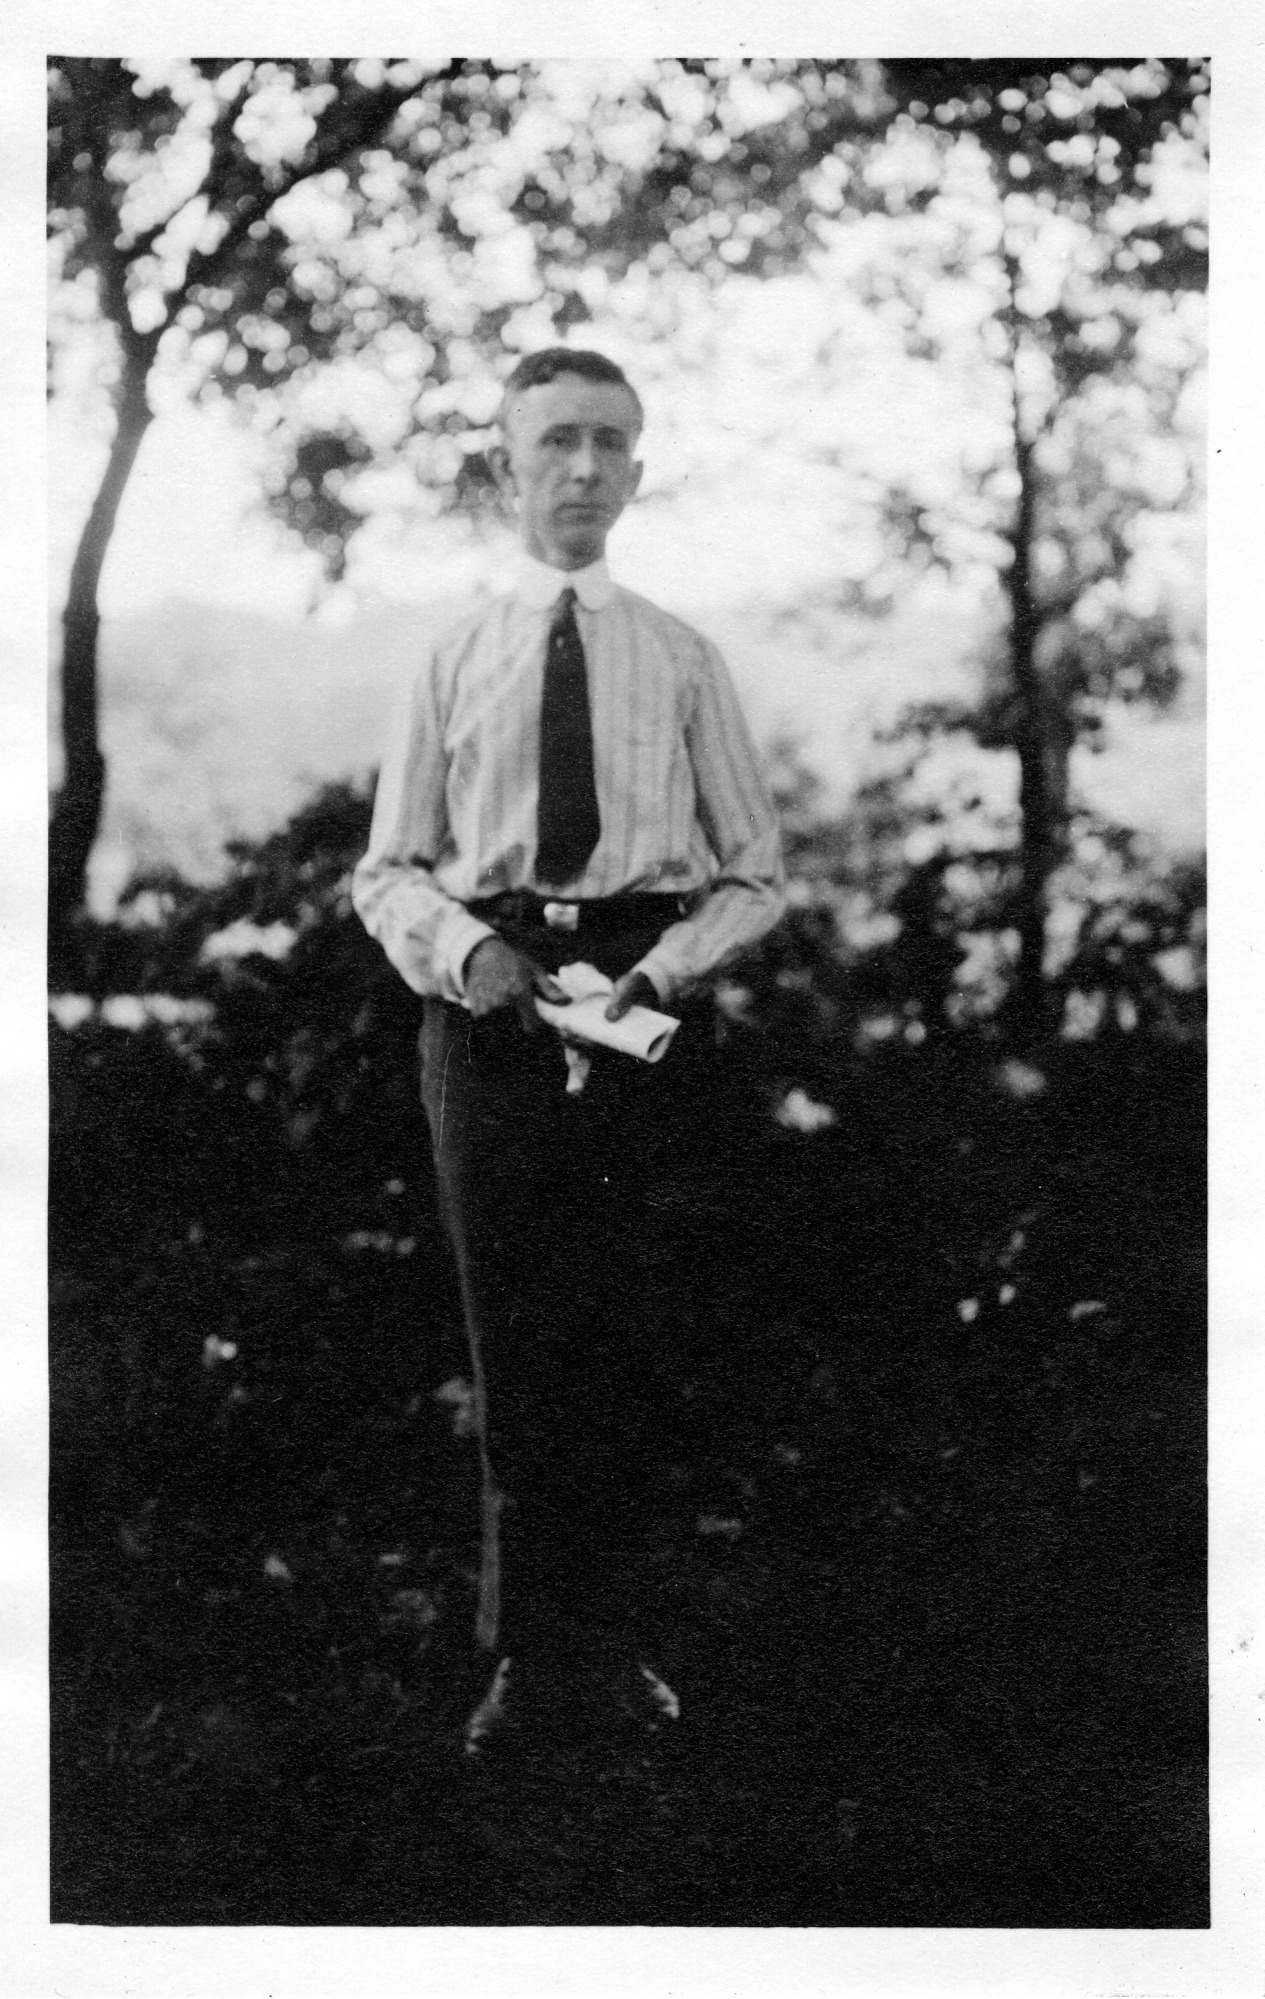 Fay-Cooper Cole (1881-1961), Smithsonian Institution Archives, SIA Acc. 90-105 [SIA2007-0115].